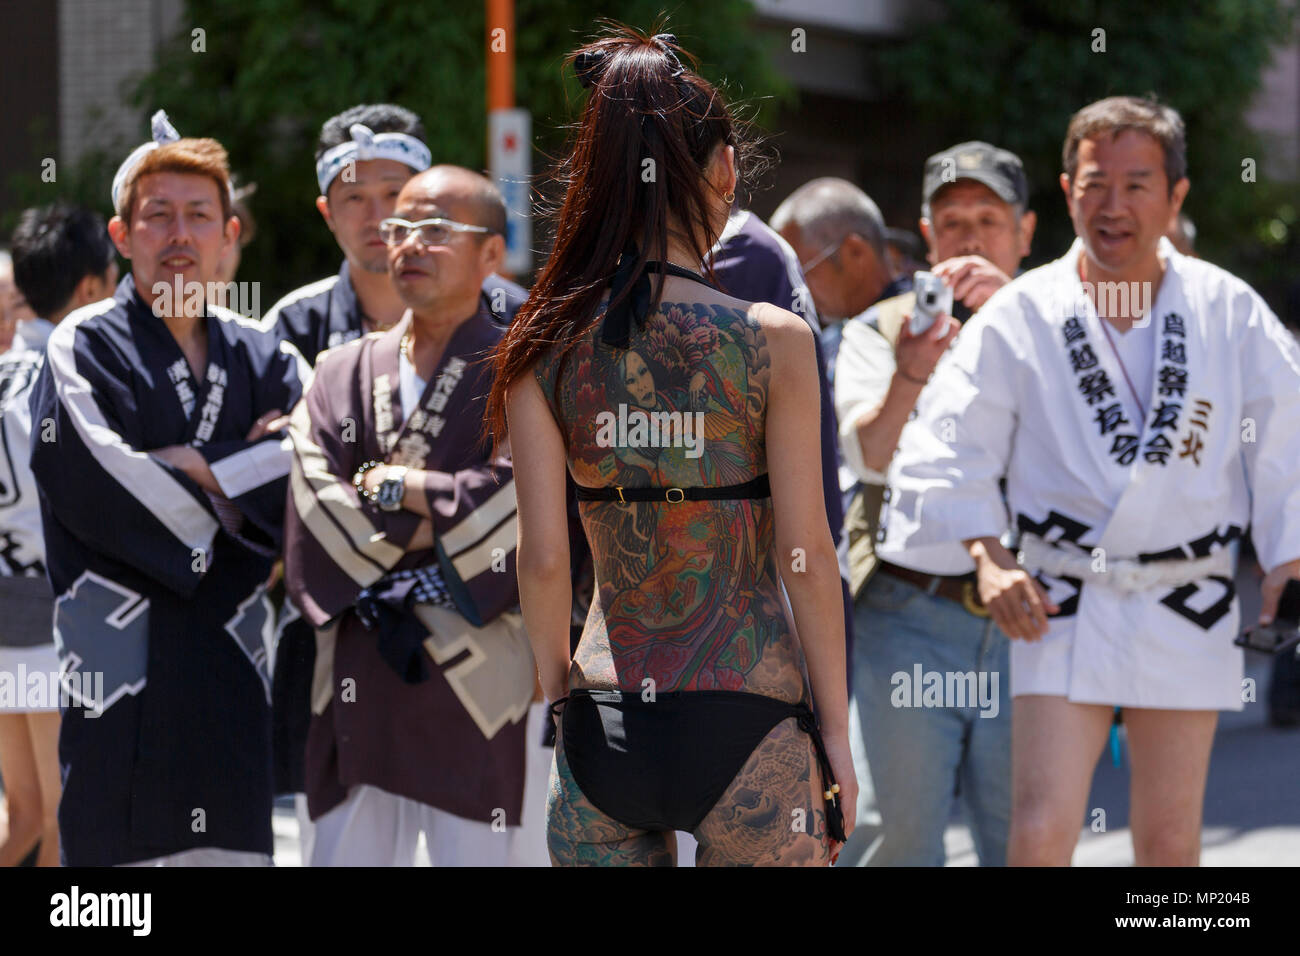 Tokyo, Japan. 20th May 2018. A woman showing her full body tattooed, possibly members of the Japanese mafia or Yakuza, poses for the cameras during the Sanja Matsuri in Asakusa district on May 20, 2018, Tokyo, Japan. The Sanja Matsuri is one of the largest Shinto festivals in Tokyo, and it is held in Tokyo's Asakusa district for three days around the third weekend of May. Credit: Rodrigo Reyes/Alamy Live News - Stock Image